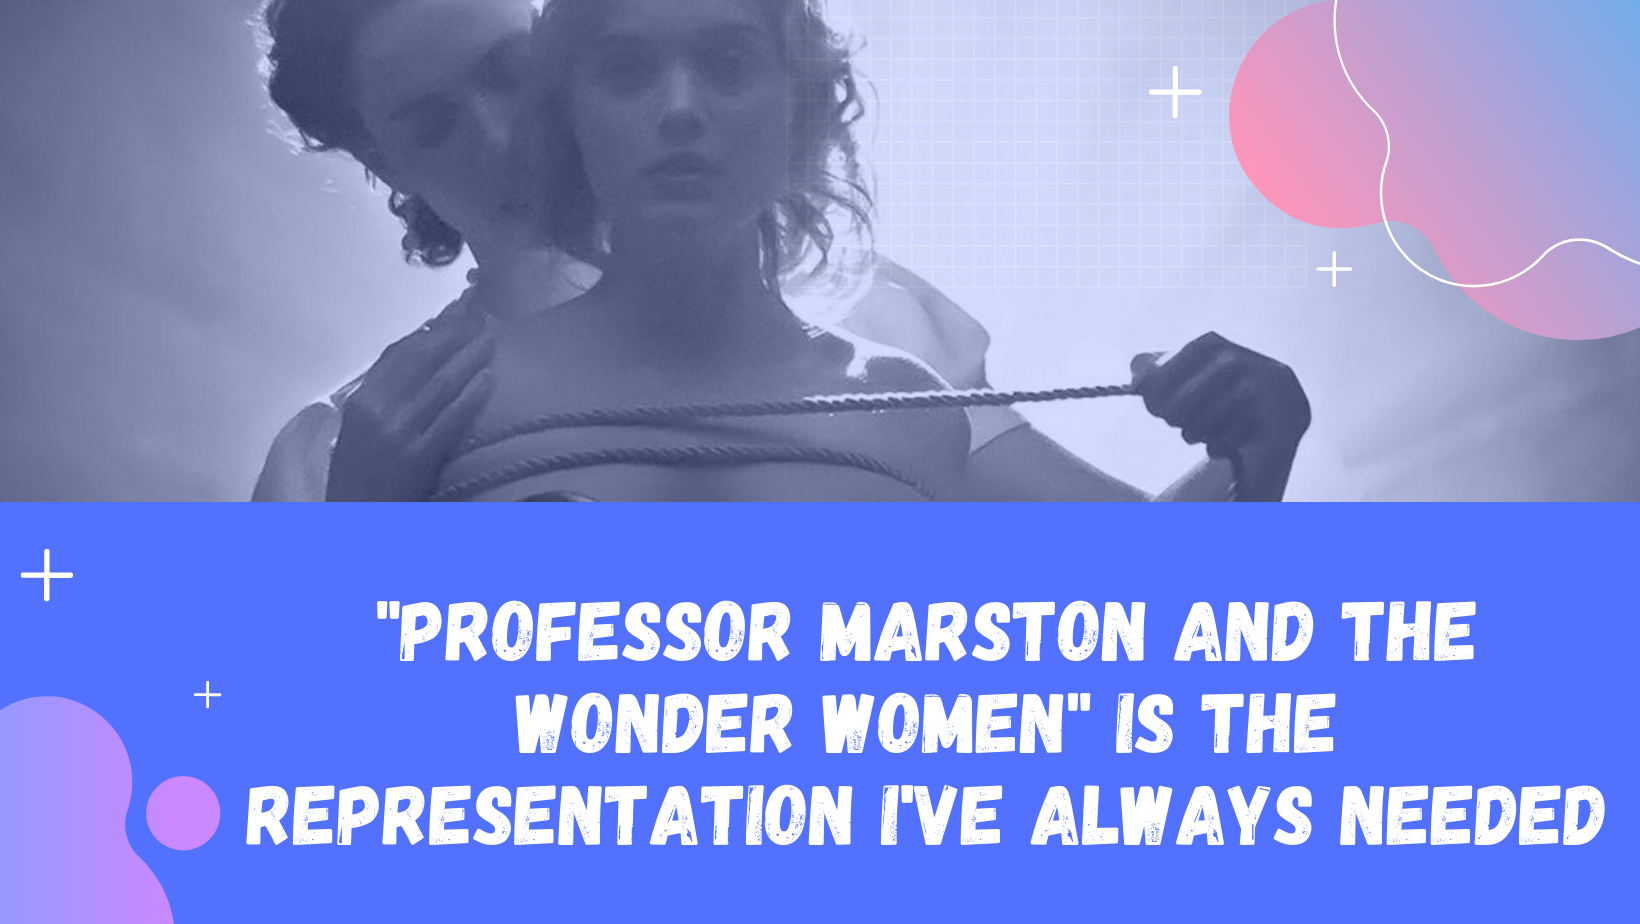 Professor and the Wonder Women is the Representation I've always needed